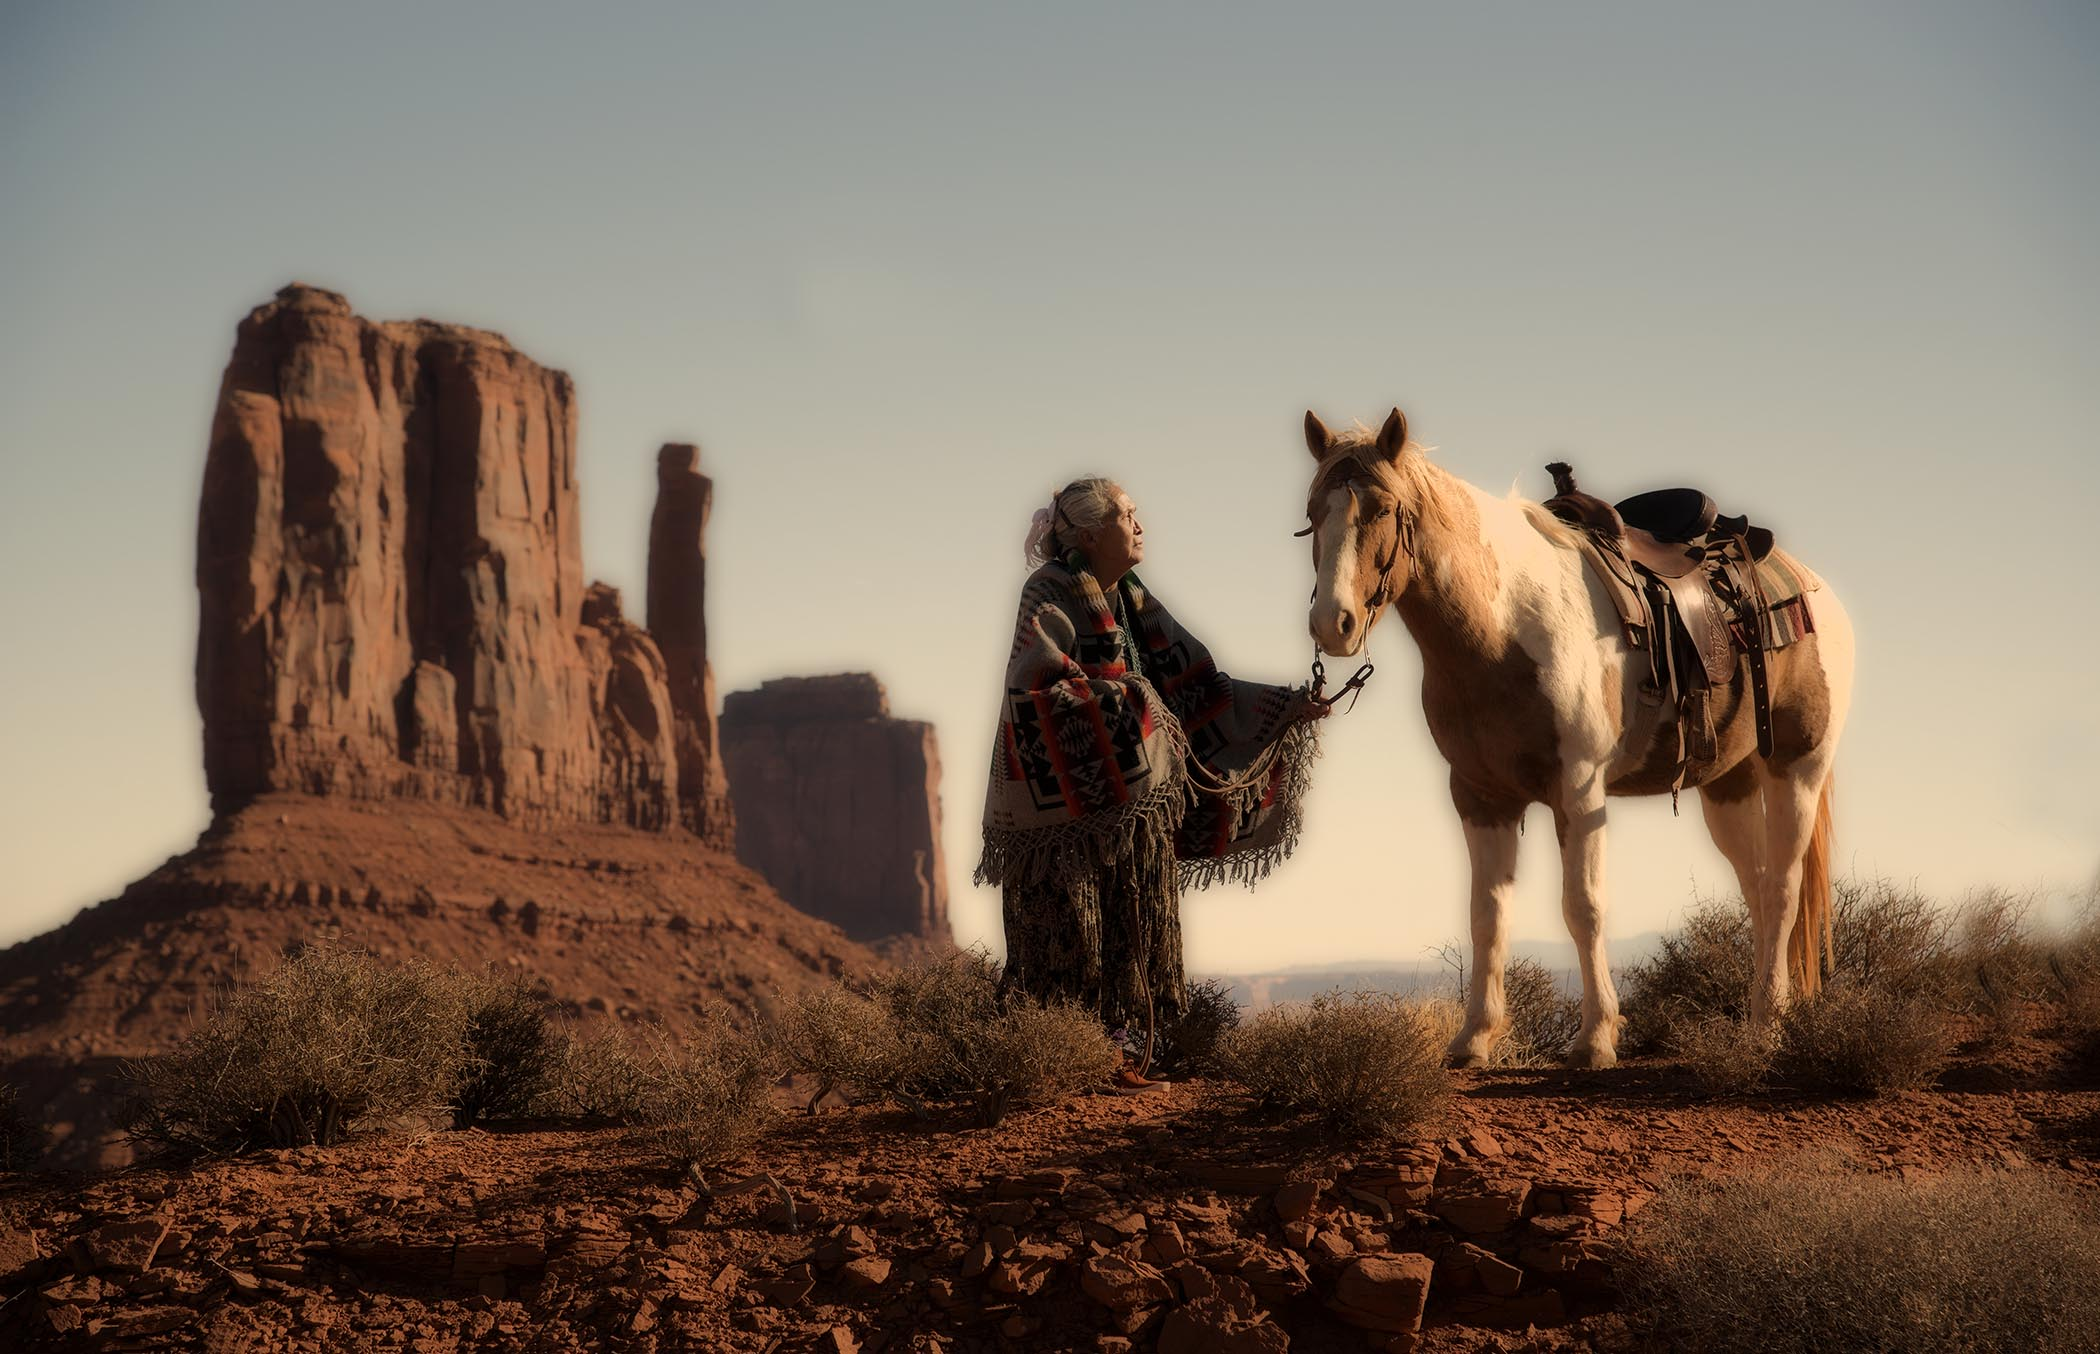 The American Wild West